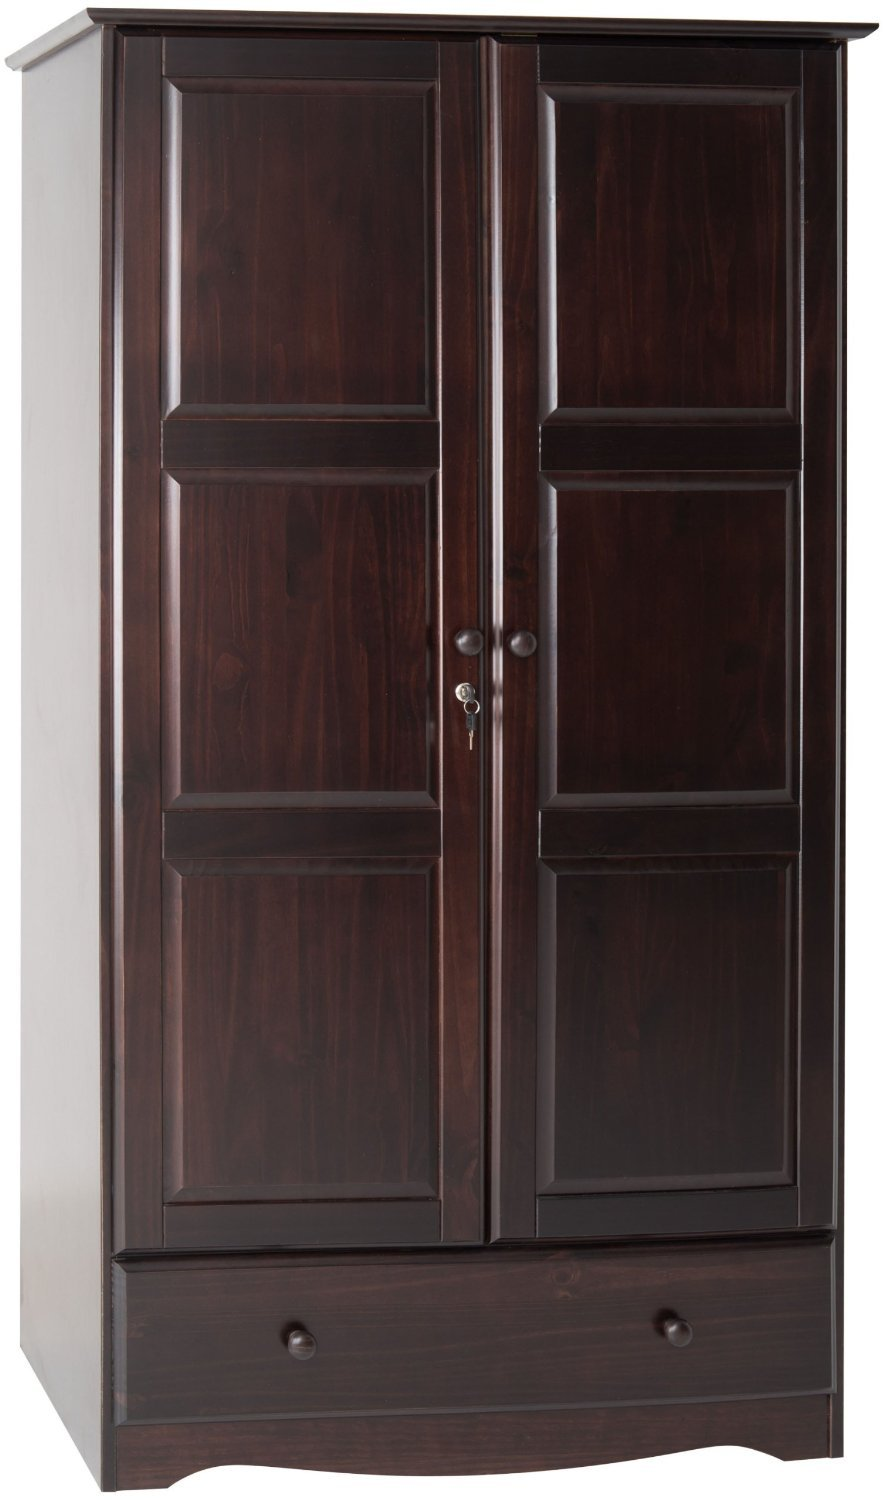 100 solid wood universal wardrobe armoire closet by palace. Black Bedroom Furniture Sets. Home Design Ideas